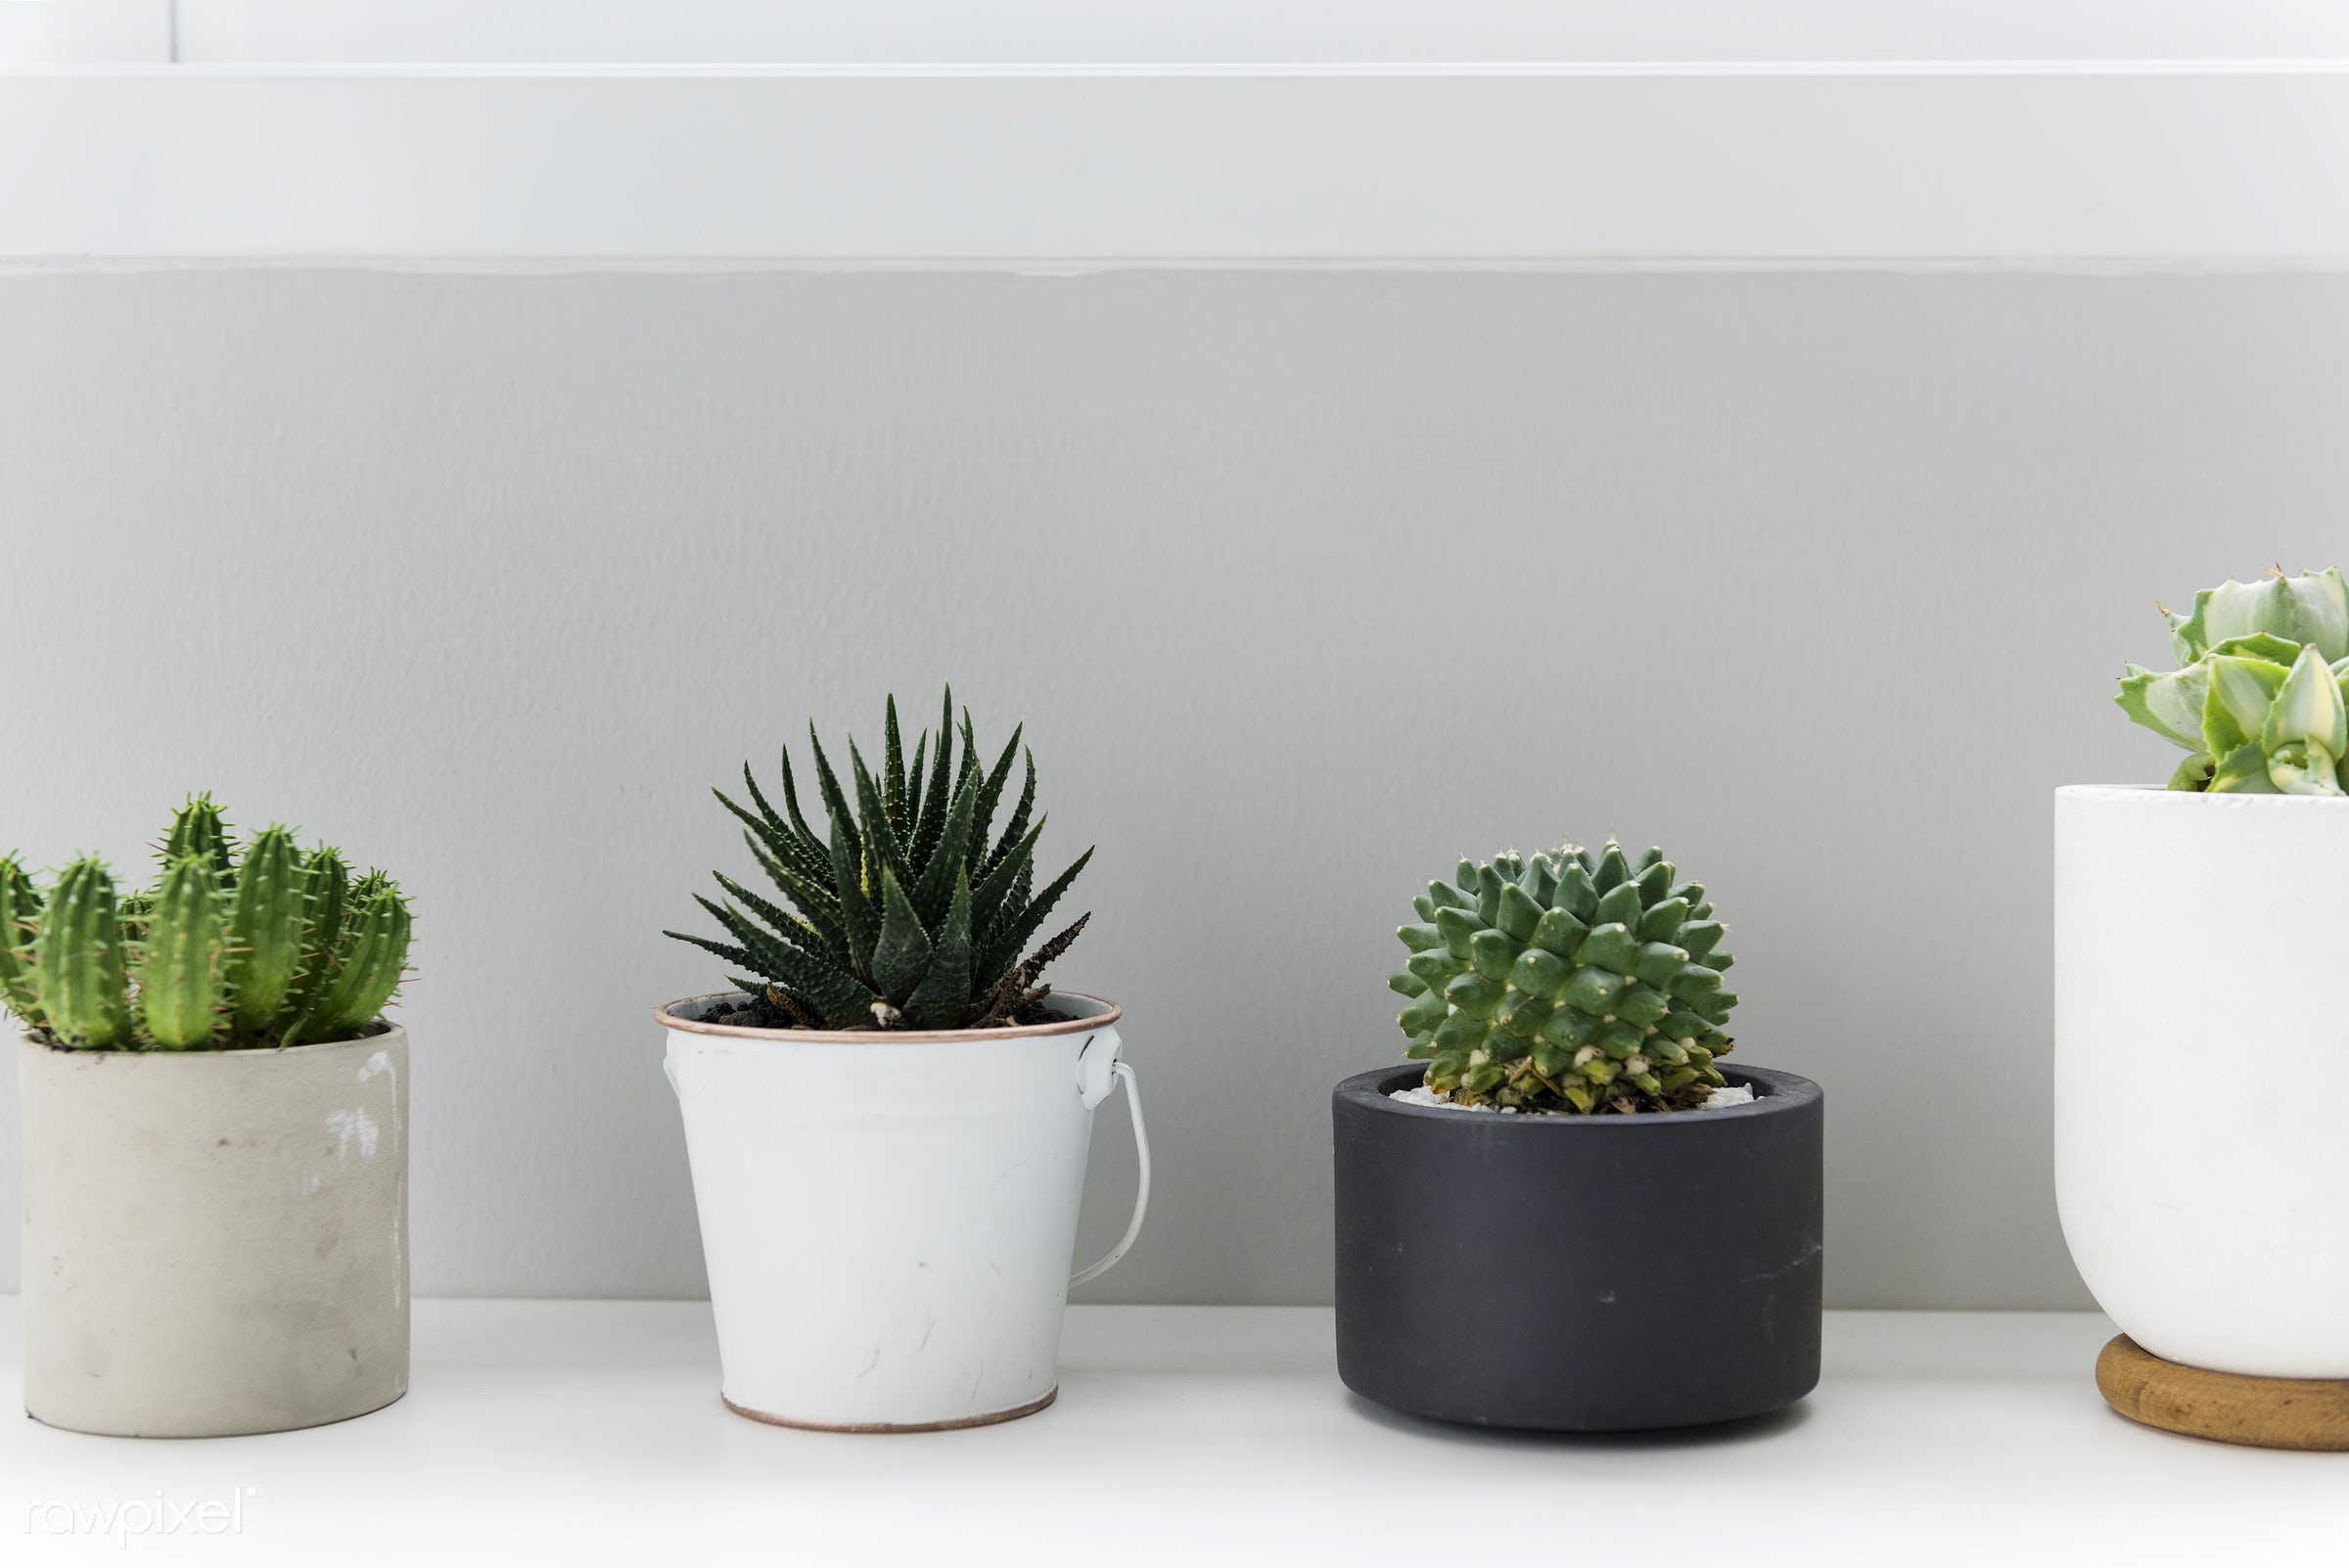 Pots of Cactus for Decoration - minimal, cactus, plant, botanical, botany, decorate, green, nature, pot, simple, simplicity...